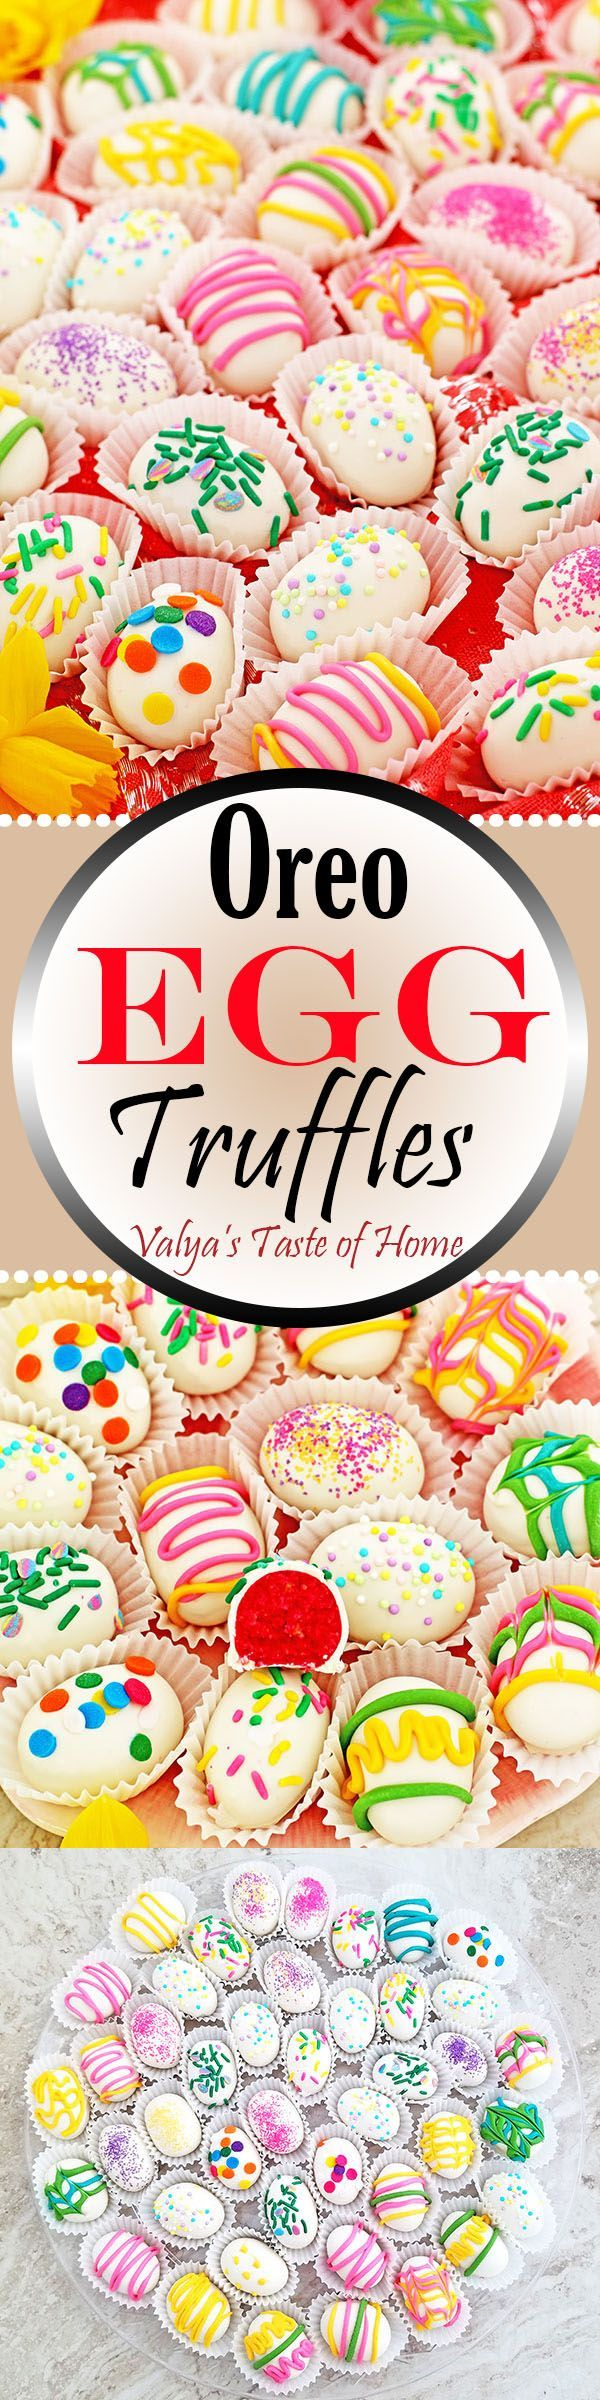 These Oreo Egg Truffles make a for adorable and inexpensive gifts for kids to give to their friends or take to school. They're incredibly delicious and 100% shareable! If you are having a family Easter brunch, with more kids in the house, this dessert will fly off the table before you will know it.